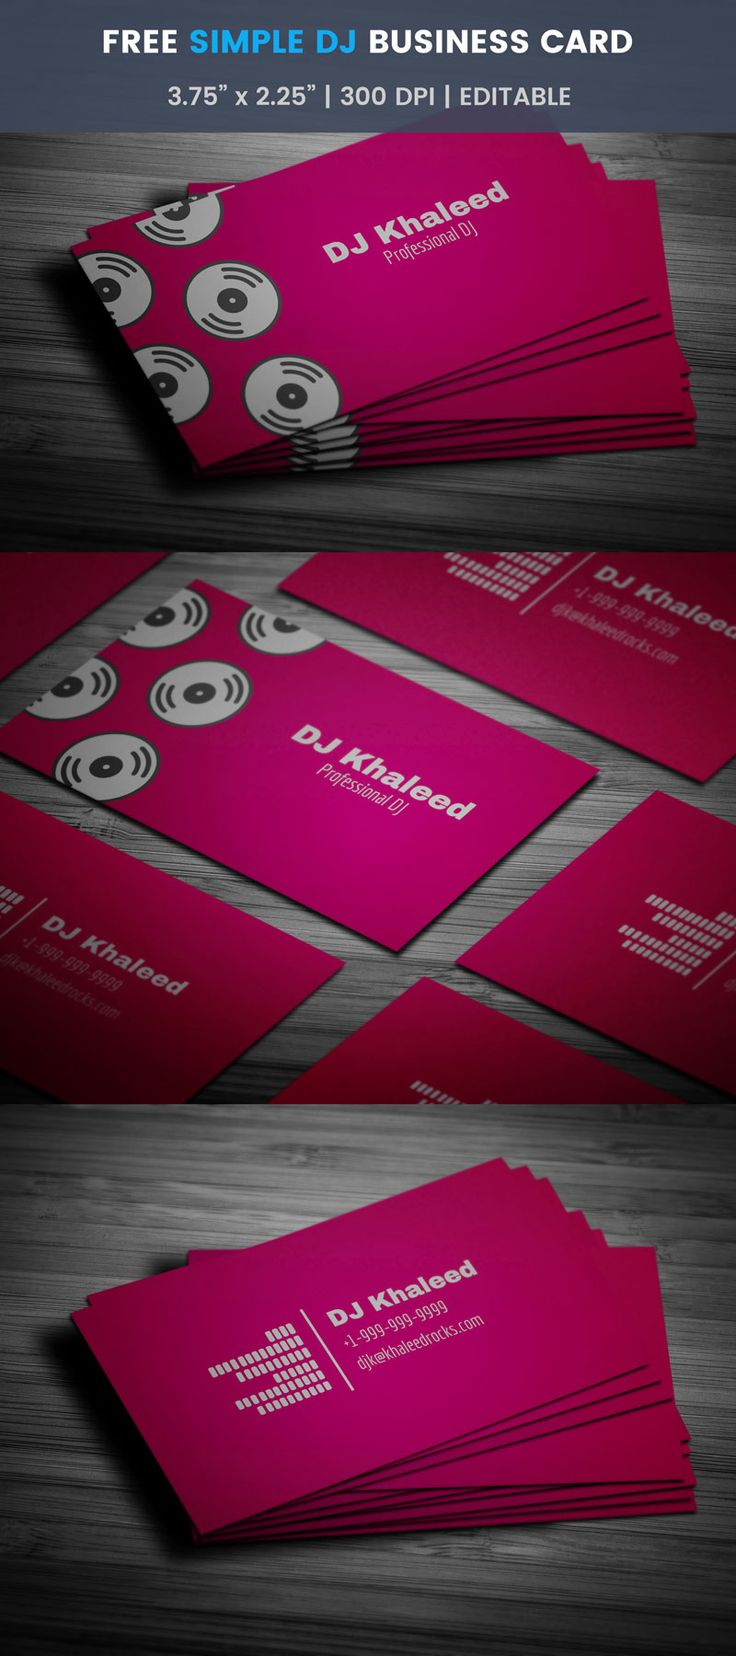 13 Best Free Dj Business Cards Images On Pinterest